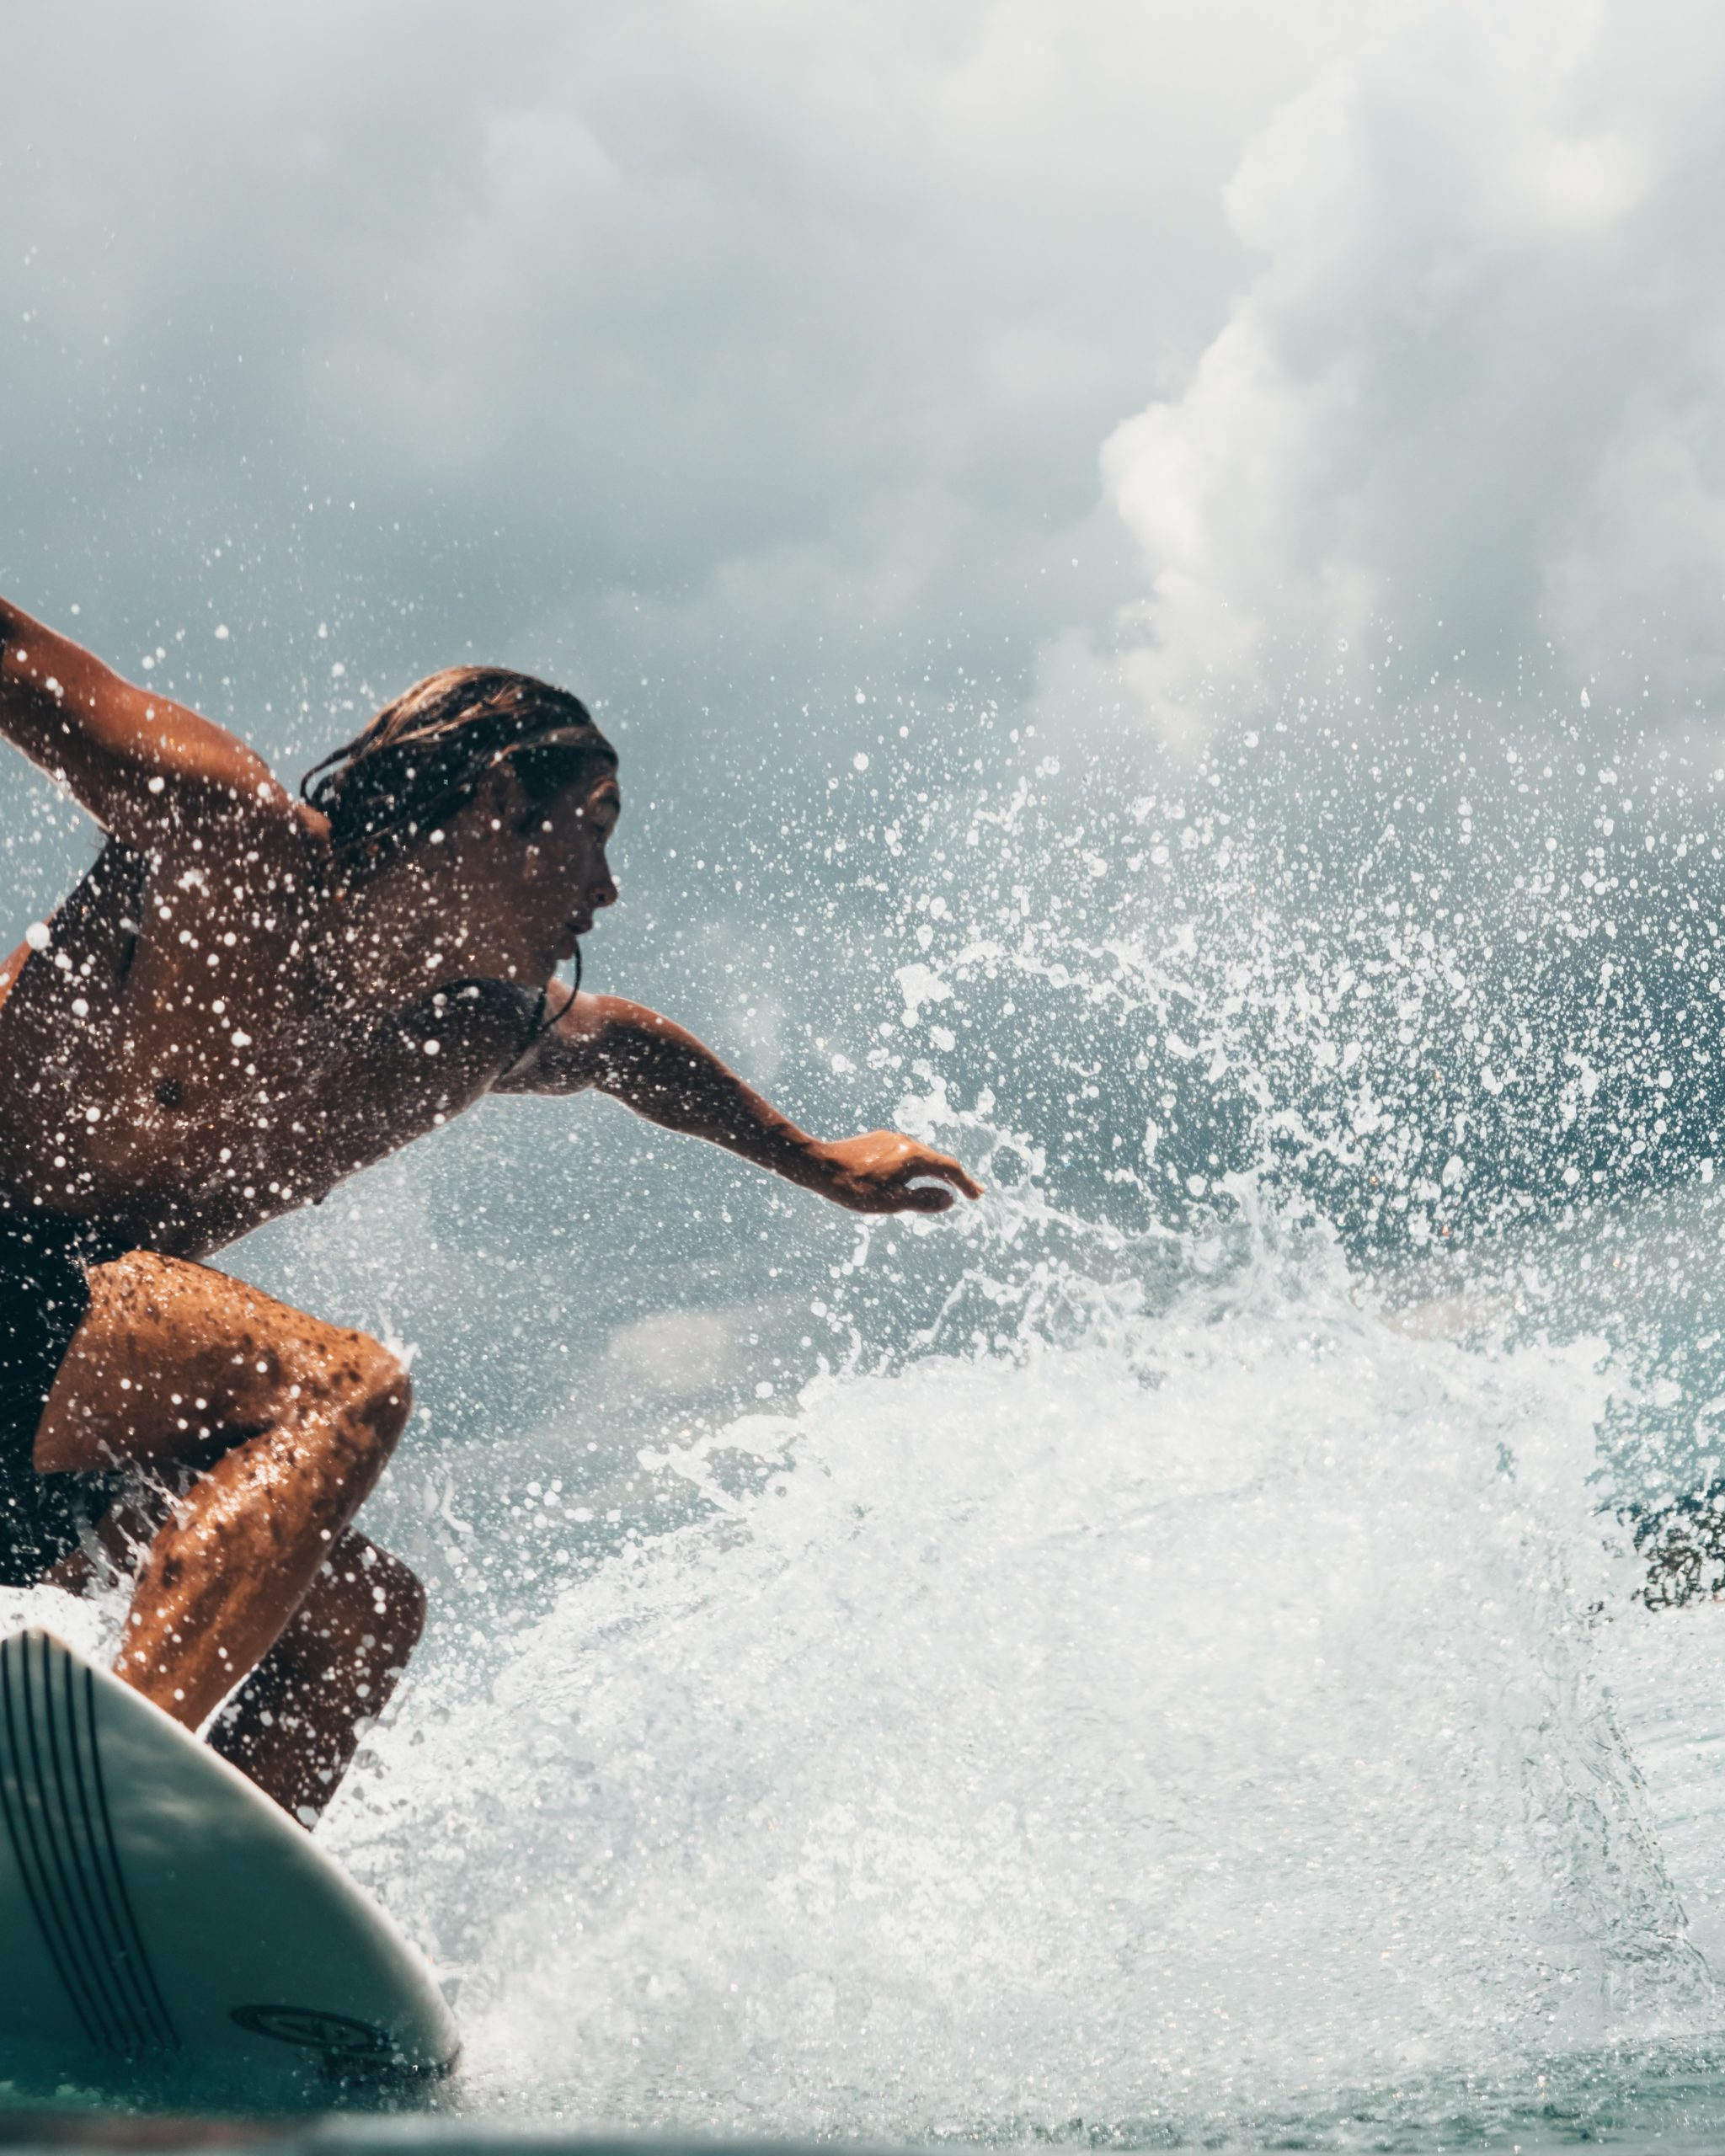 Surfing Competitions At A Competitive Level